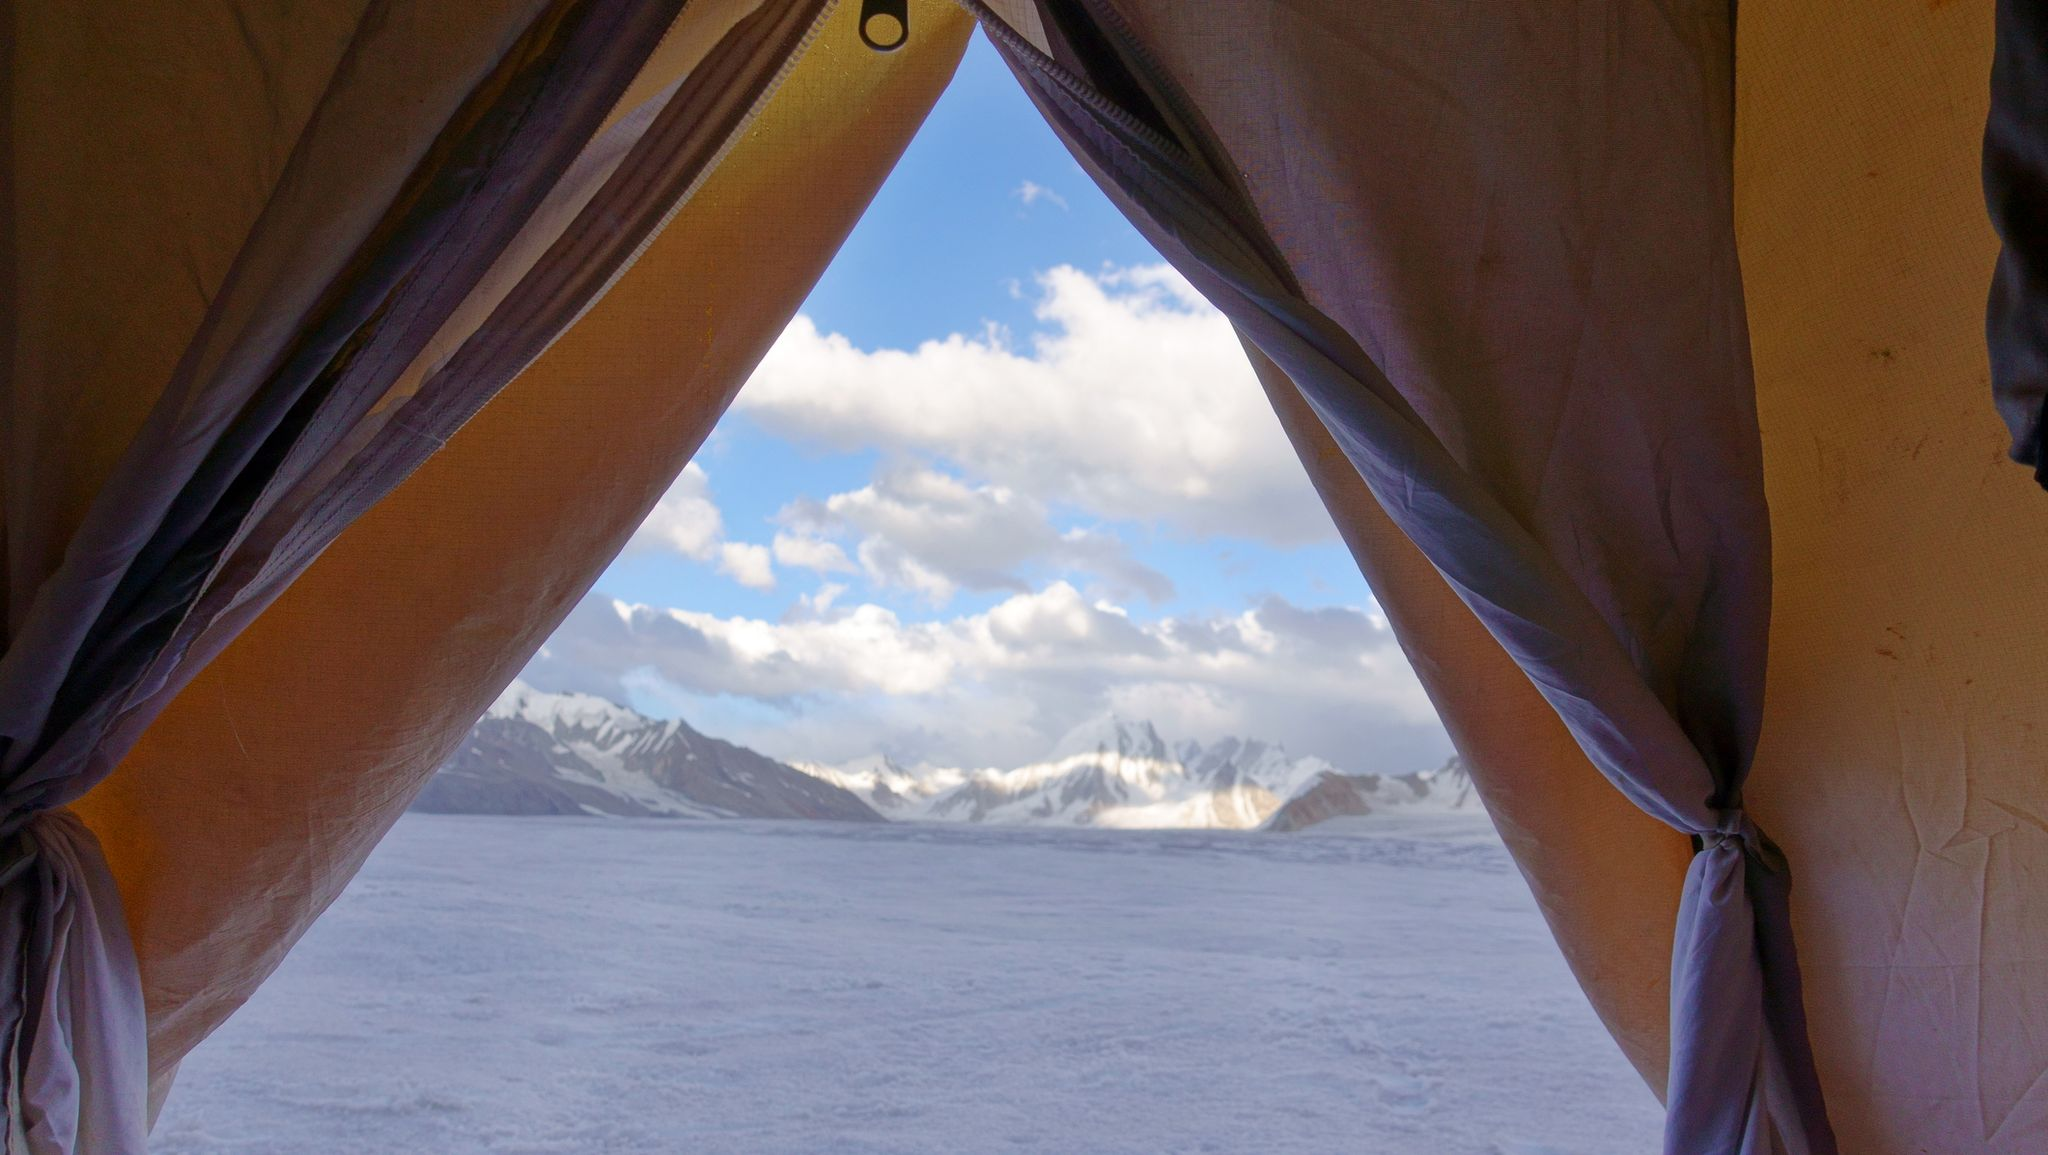 view-from-a-camping-tent-royalty-free-image-1569177241